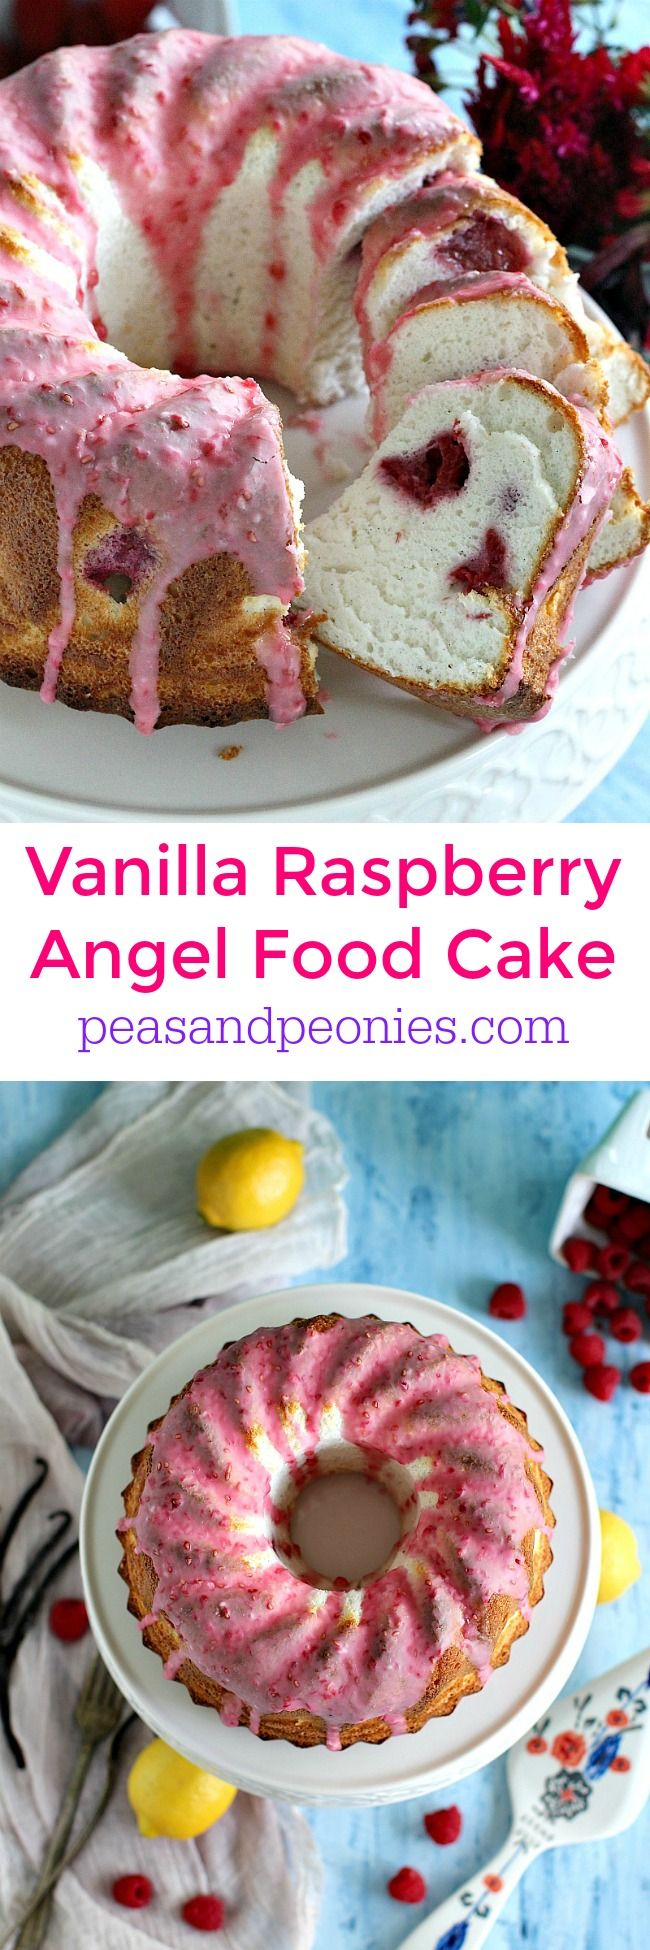 Raspberry Angel Food Cake - Peas and Peonies                                                                                                                                                                                 More